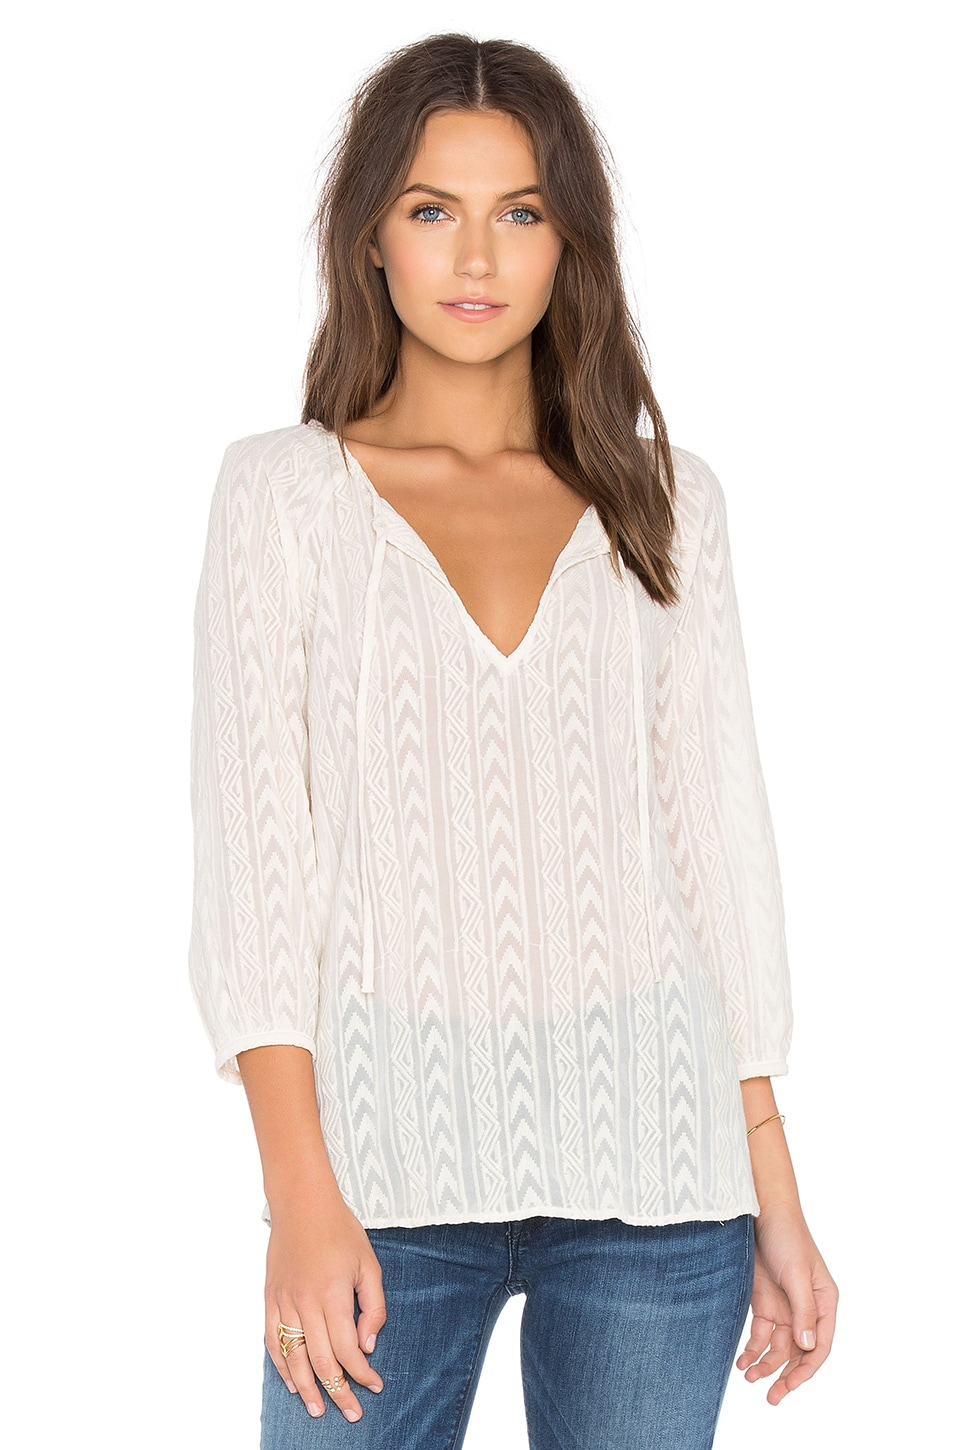 Bb dakota ella top in antique ivory revolve